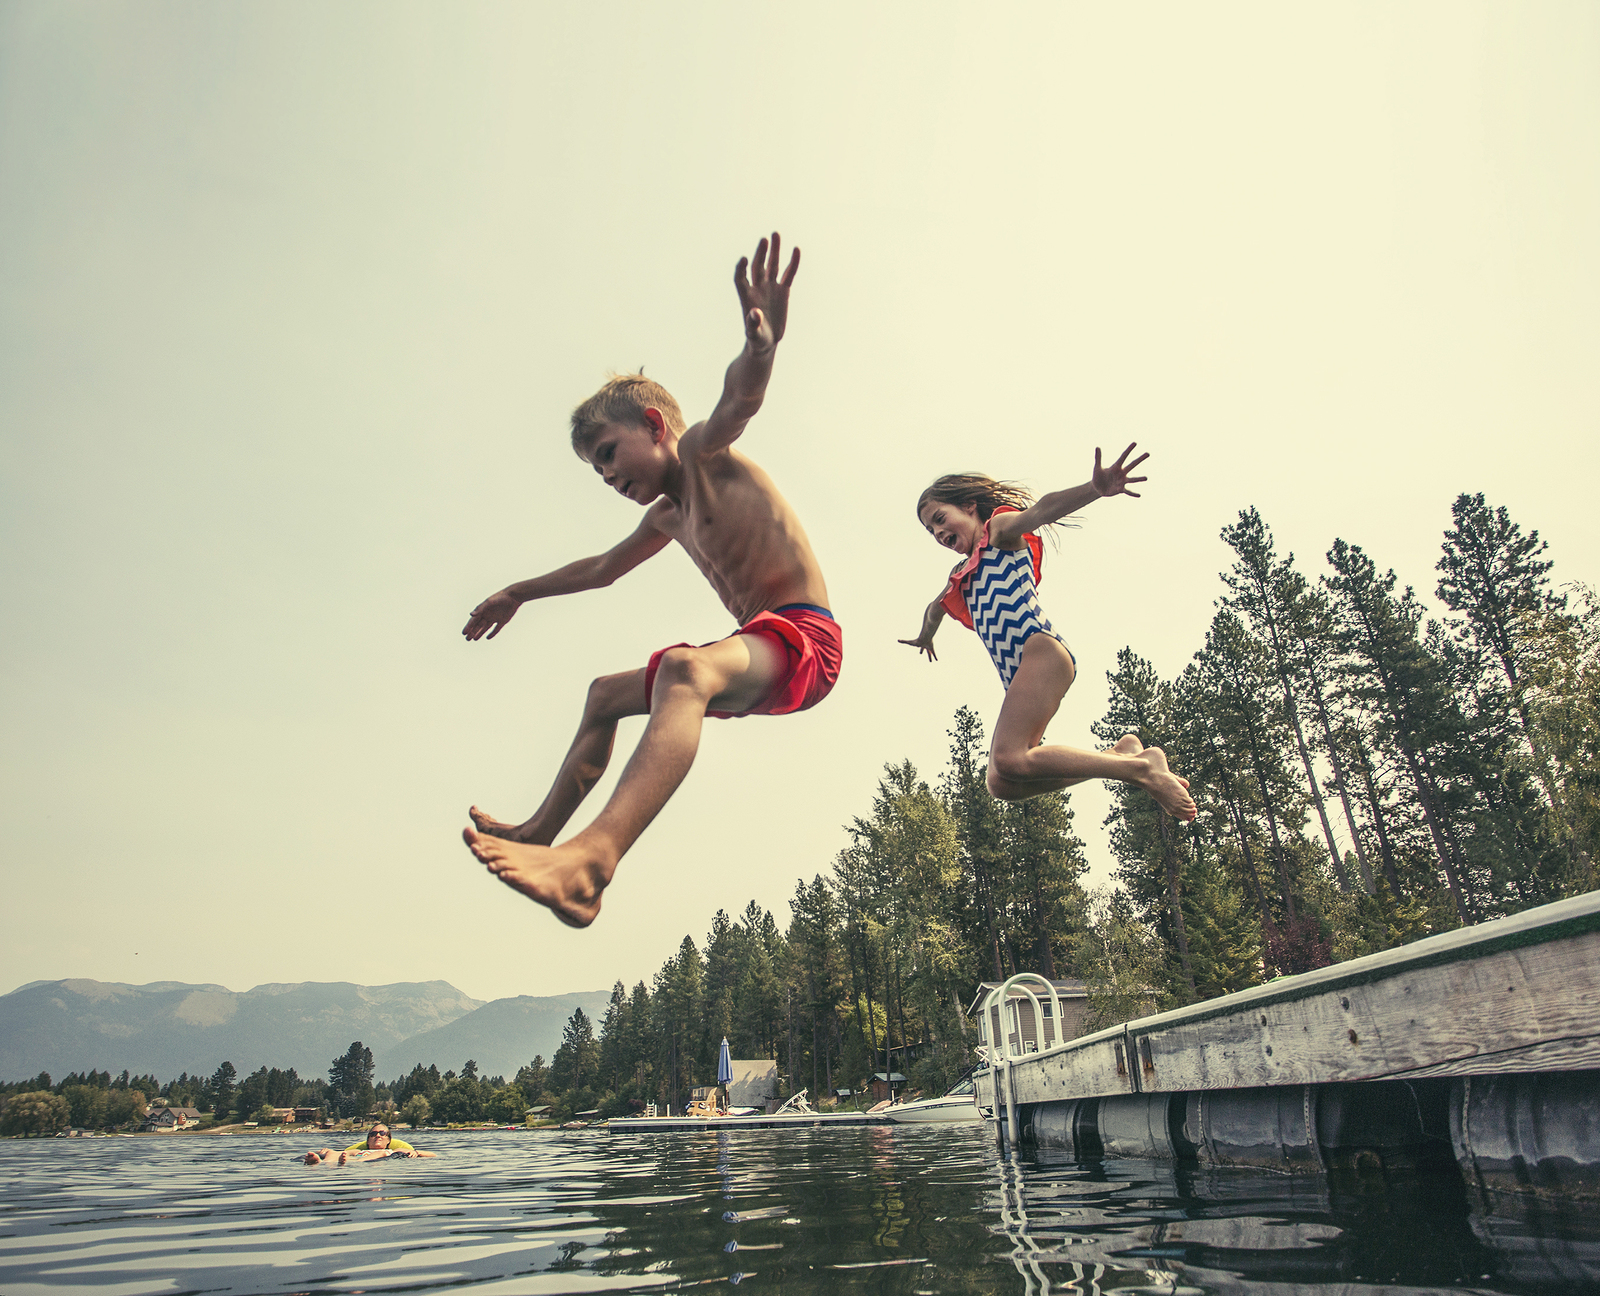 Is your child's summer structured with activities and schedules, or are they free to do what they like?